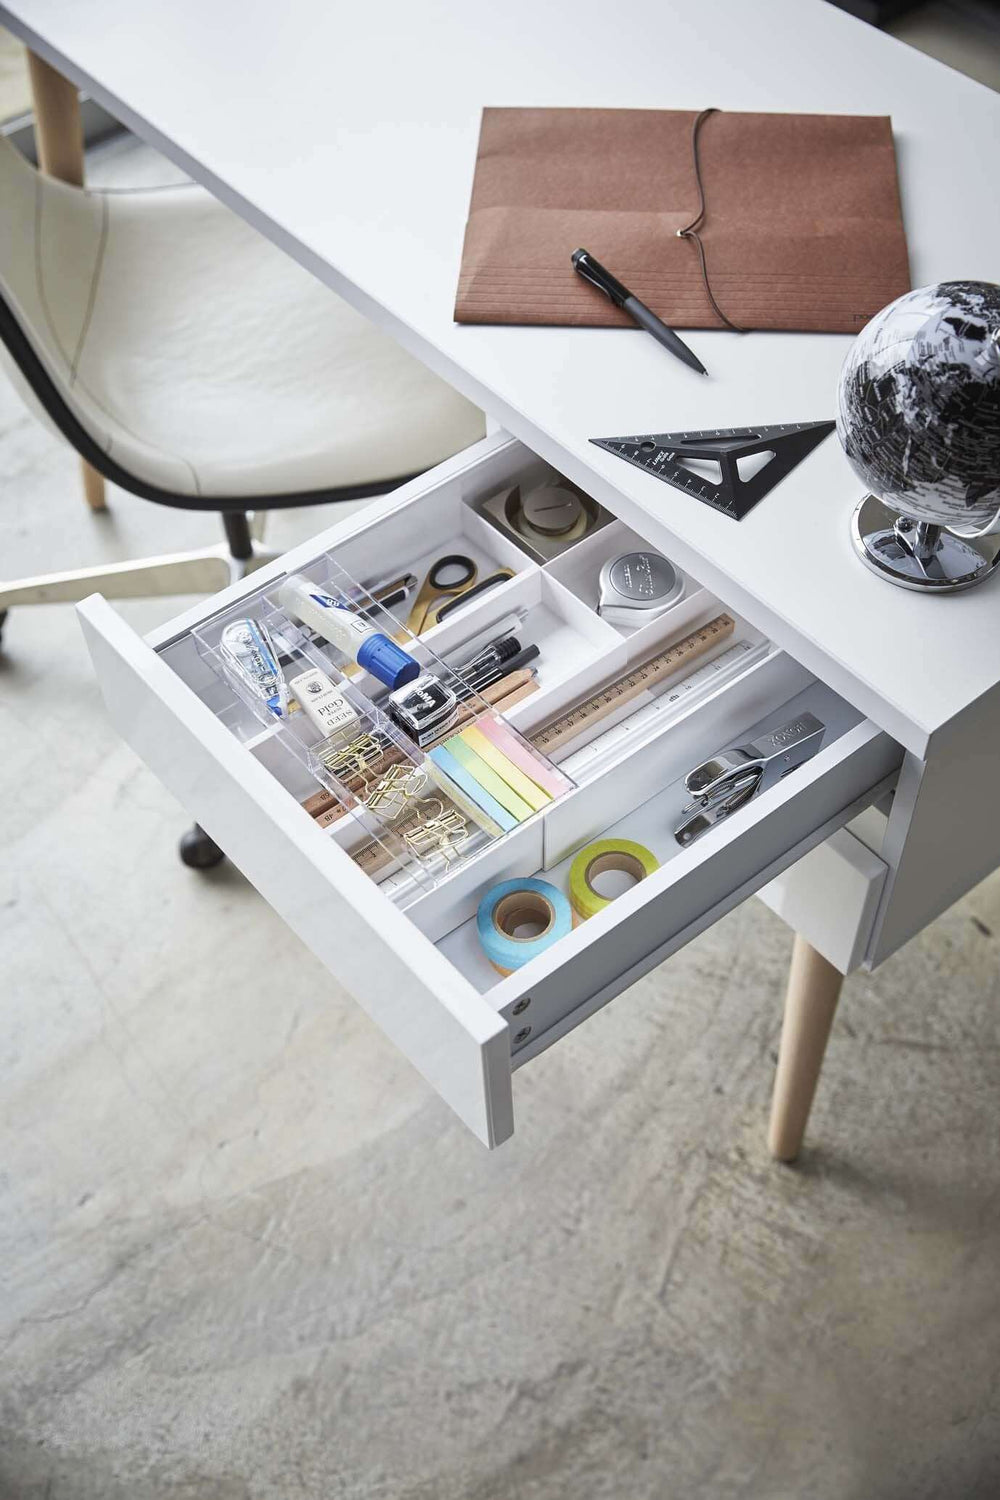 Yamazaki's white organizer filled with office supplies inside a desk drawer.